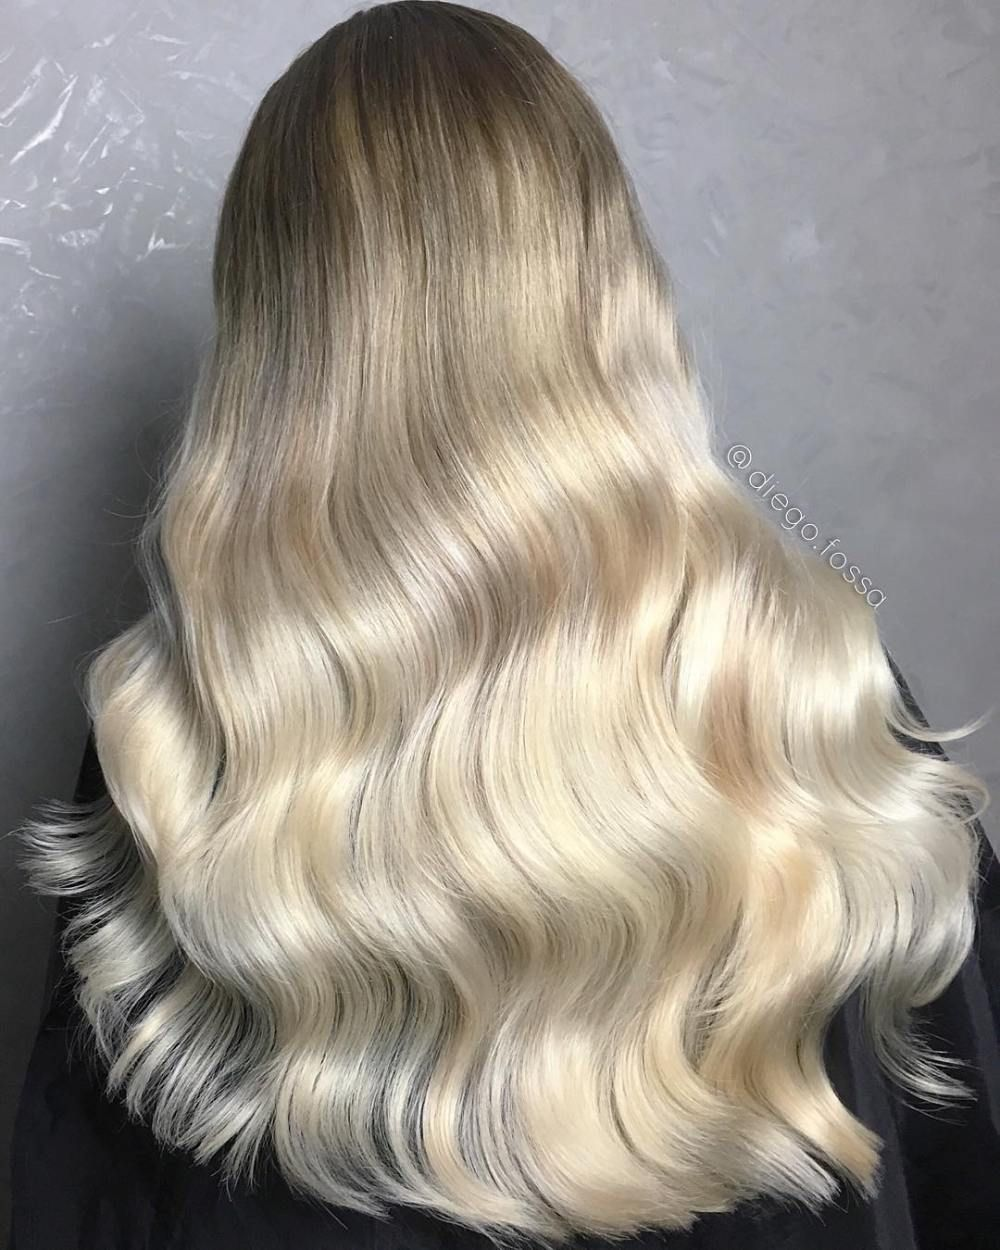 best hair colors for springsummer season blonde ombre